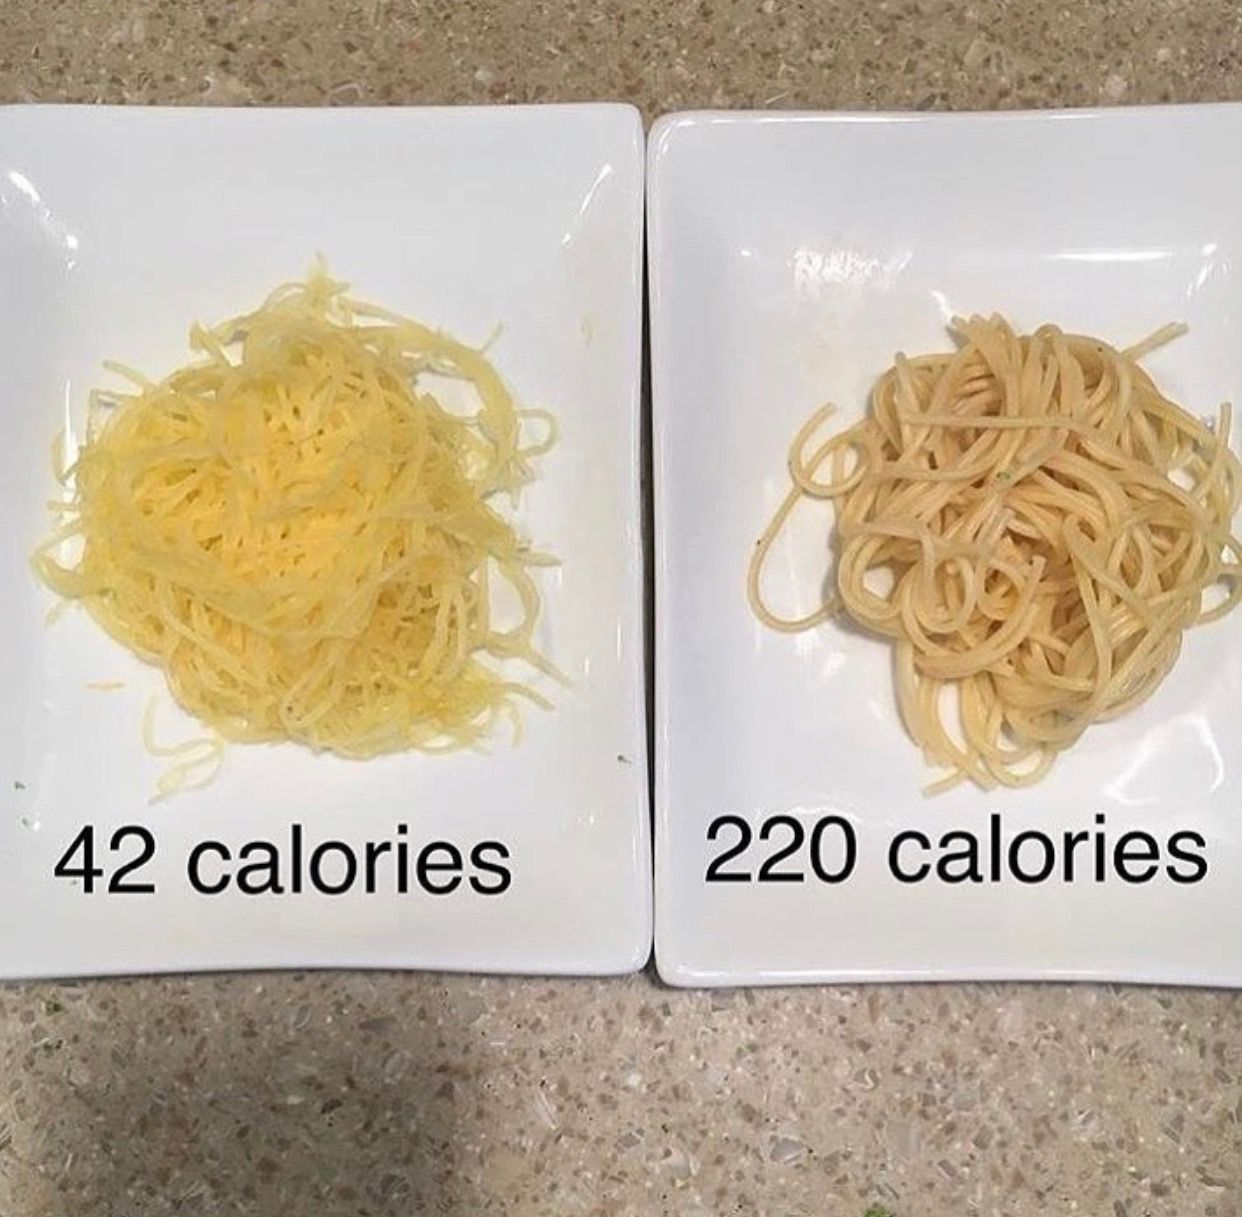 Calories In Spaghetti Squash Vs Regular Pasta Nutrition Recipes Calorie 310 Nutrition Recipes